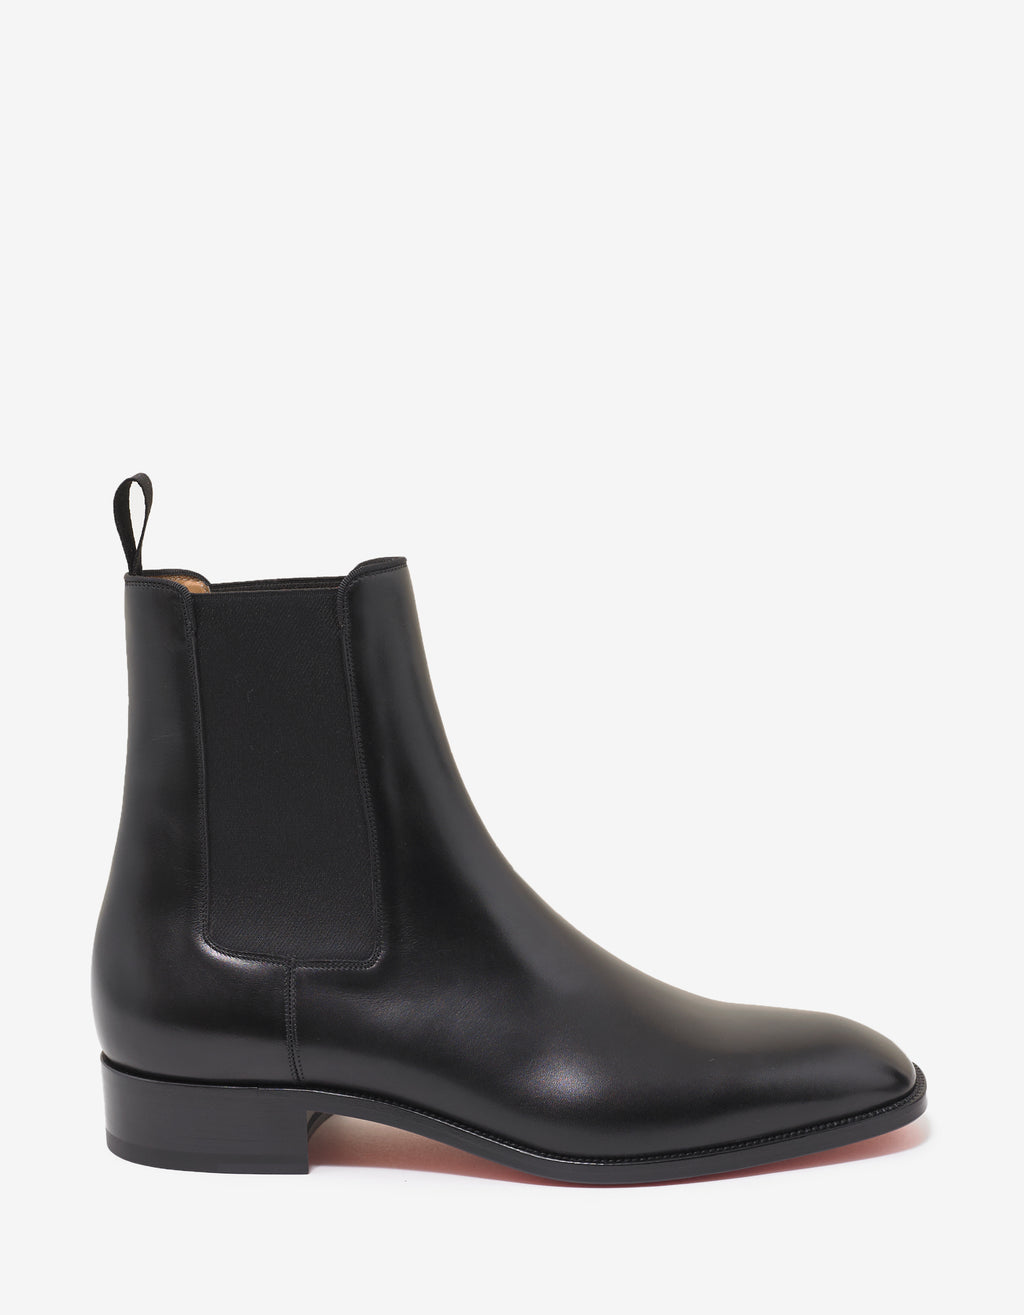 Samson Flat Black Leather Chelsea Boots